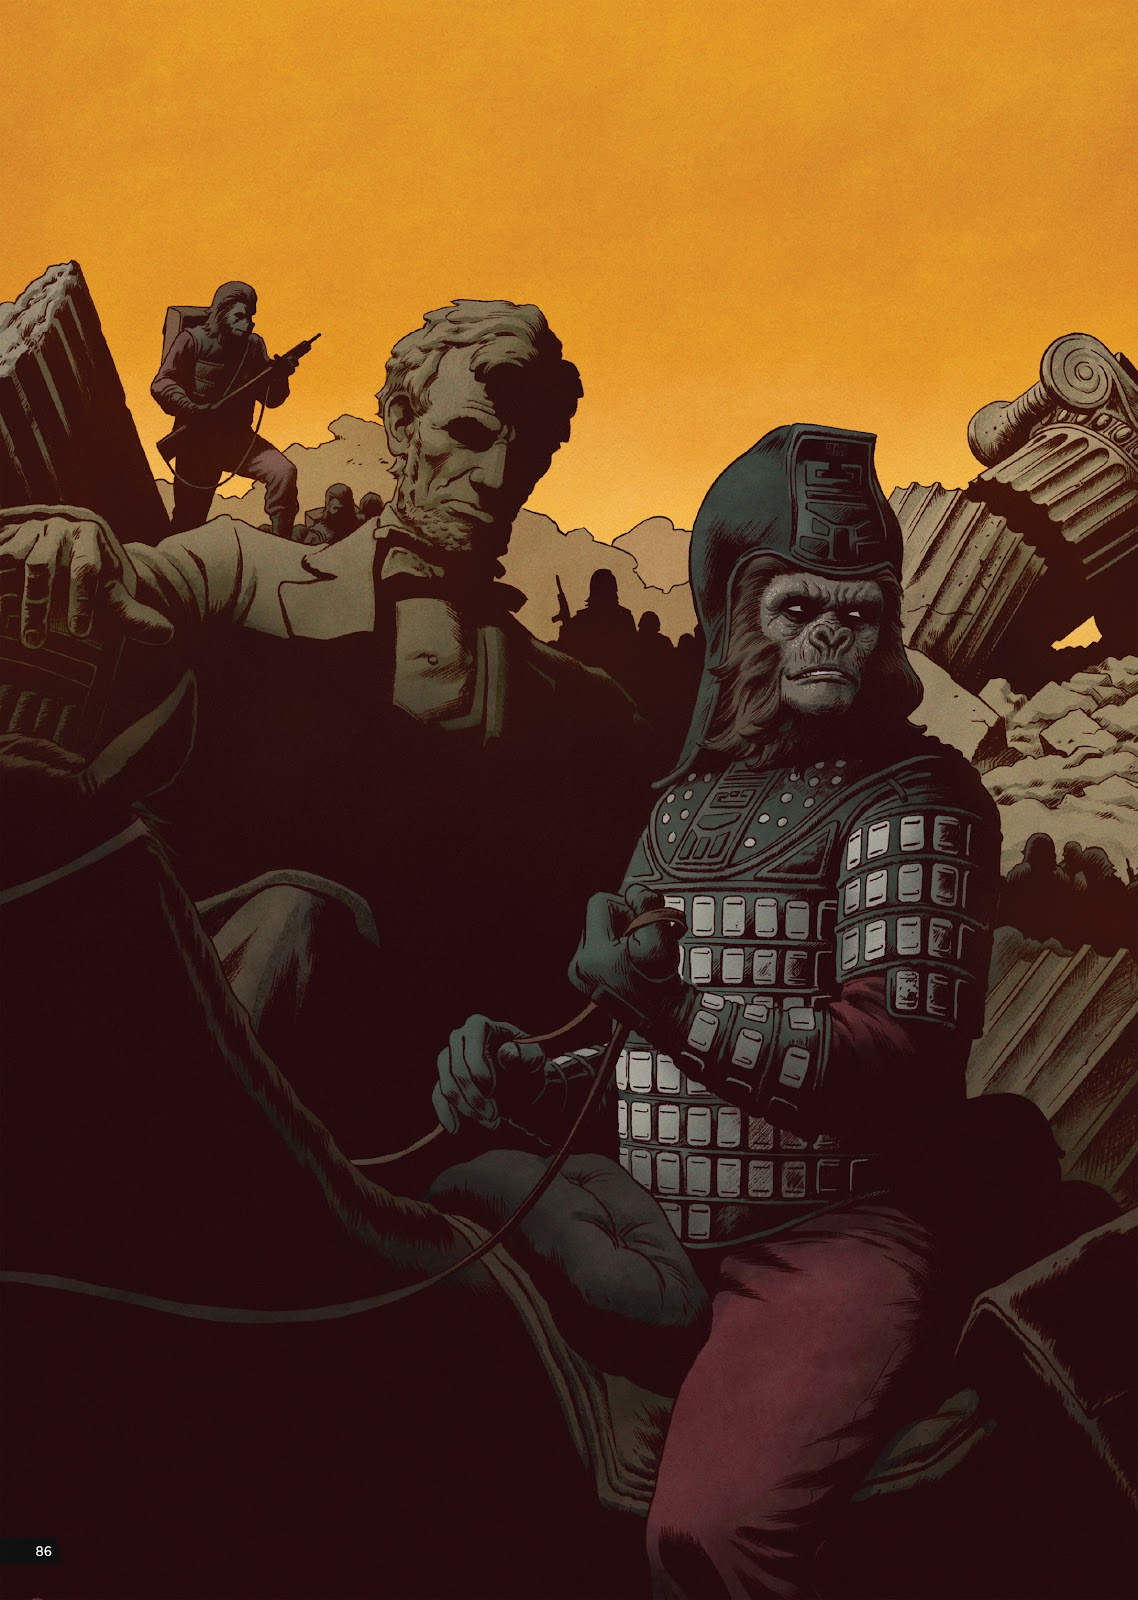 Read online Planet of the Apes Artist Tribute comic -  Issue # TPB - 86